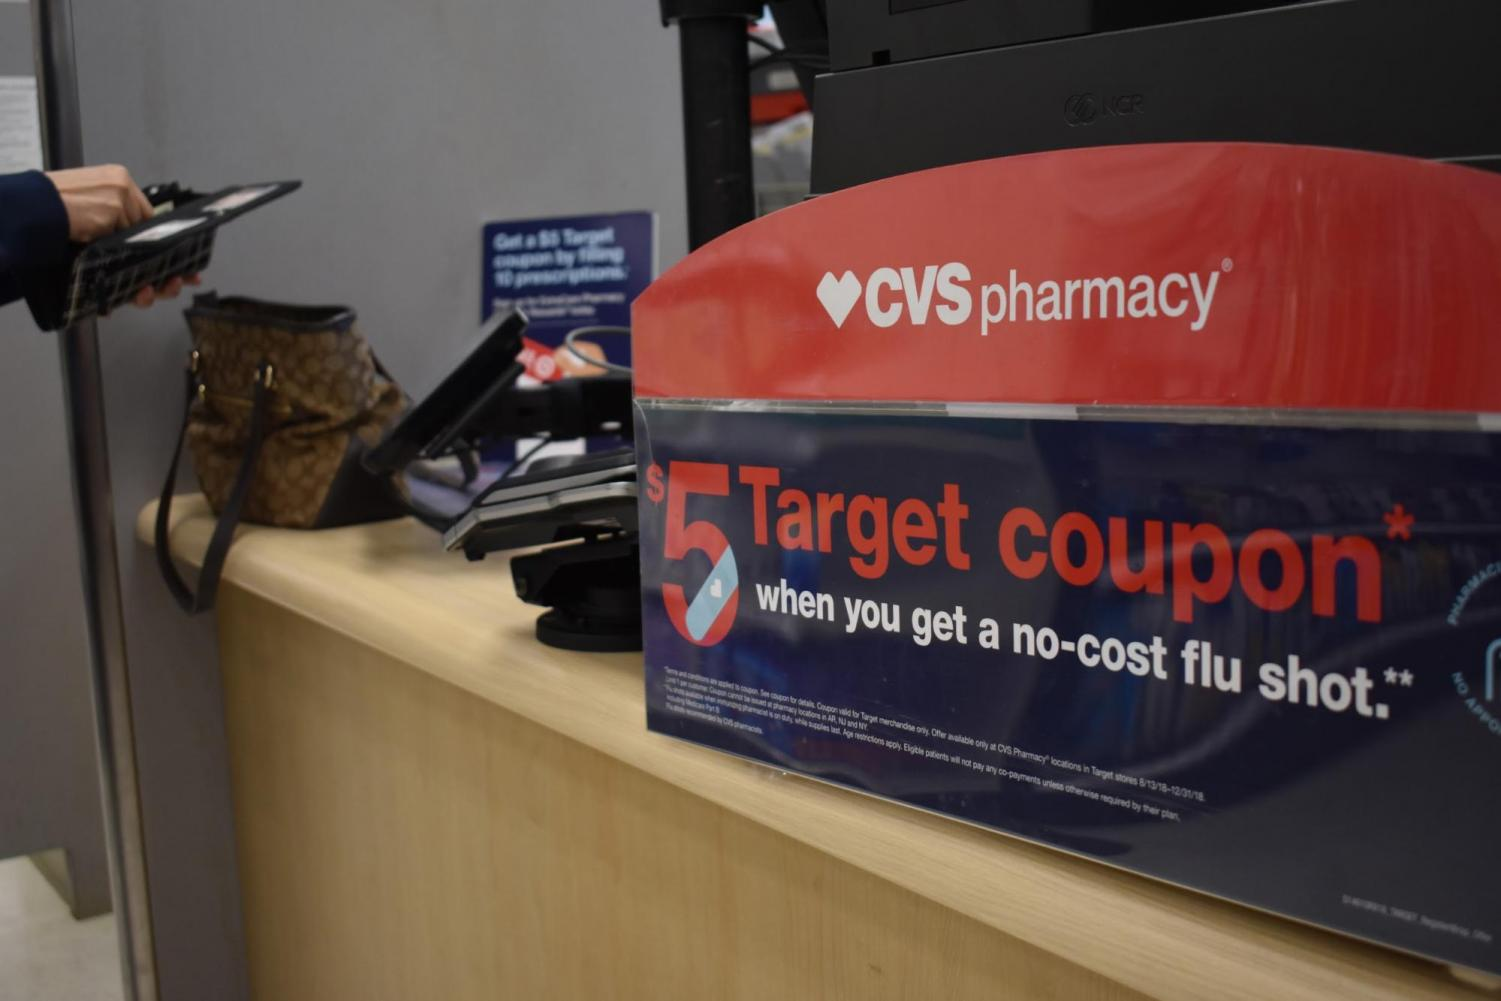 In time for flu season, Target's CVS pharmacy promotes a deal to receive a $5 coupon alongside a vaccination. Places like Target allow individuals to have options apart from their doctors' offices to get the shots. Photo by Grace Chang.